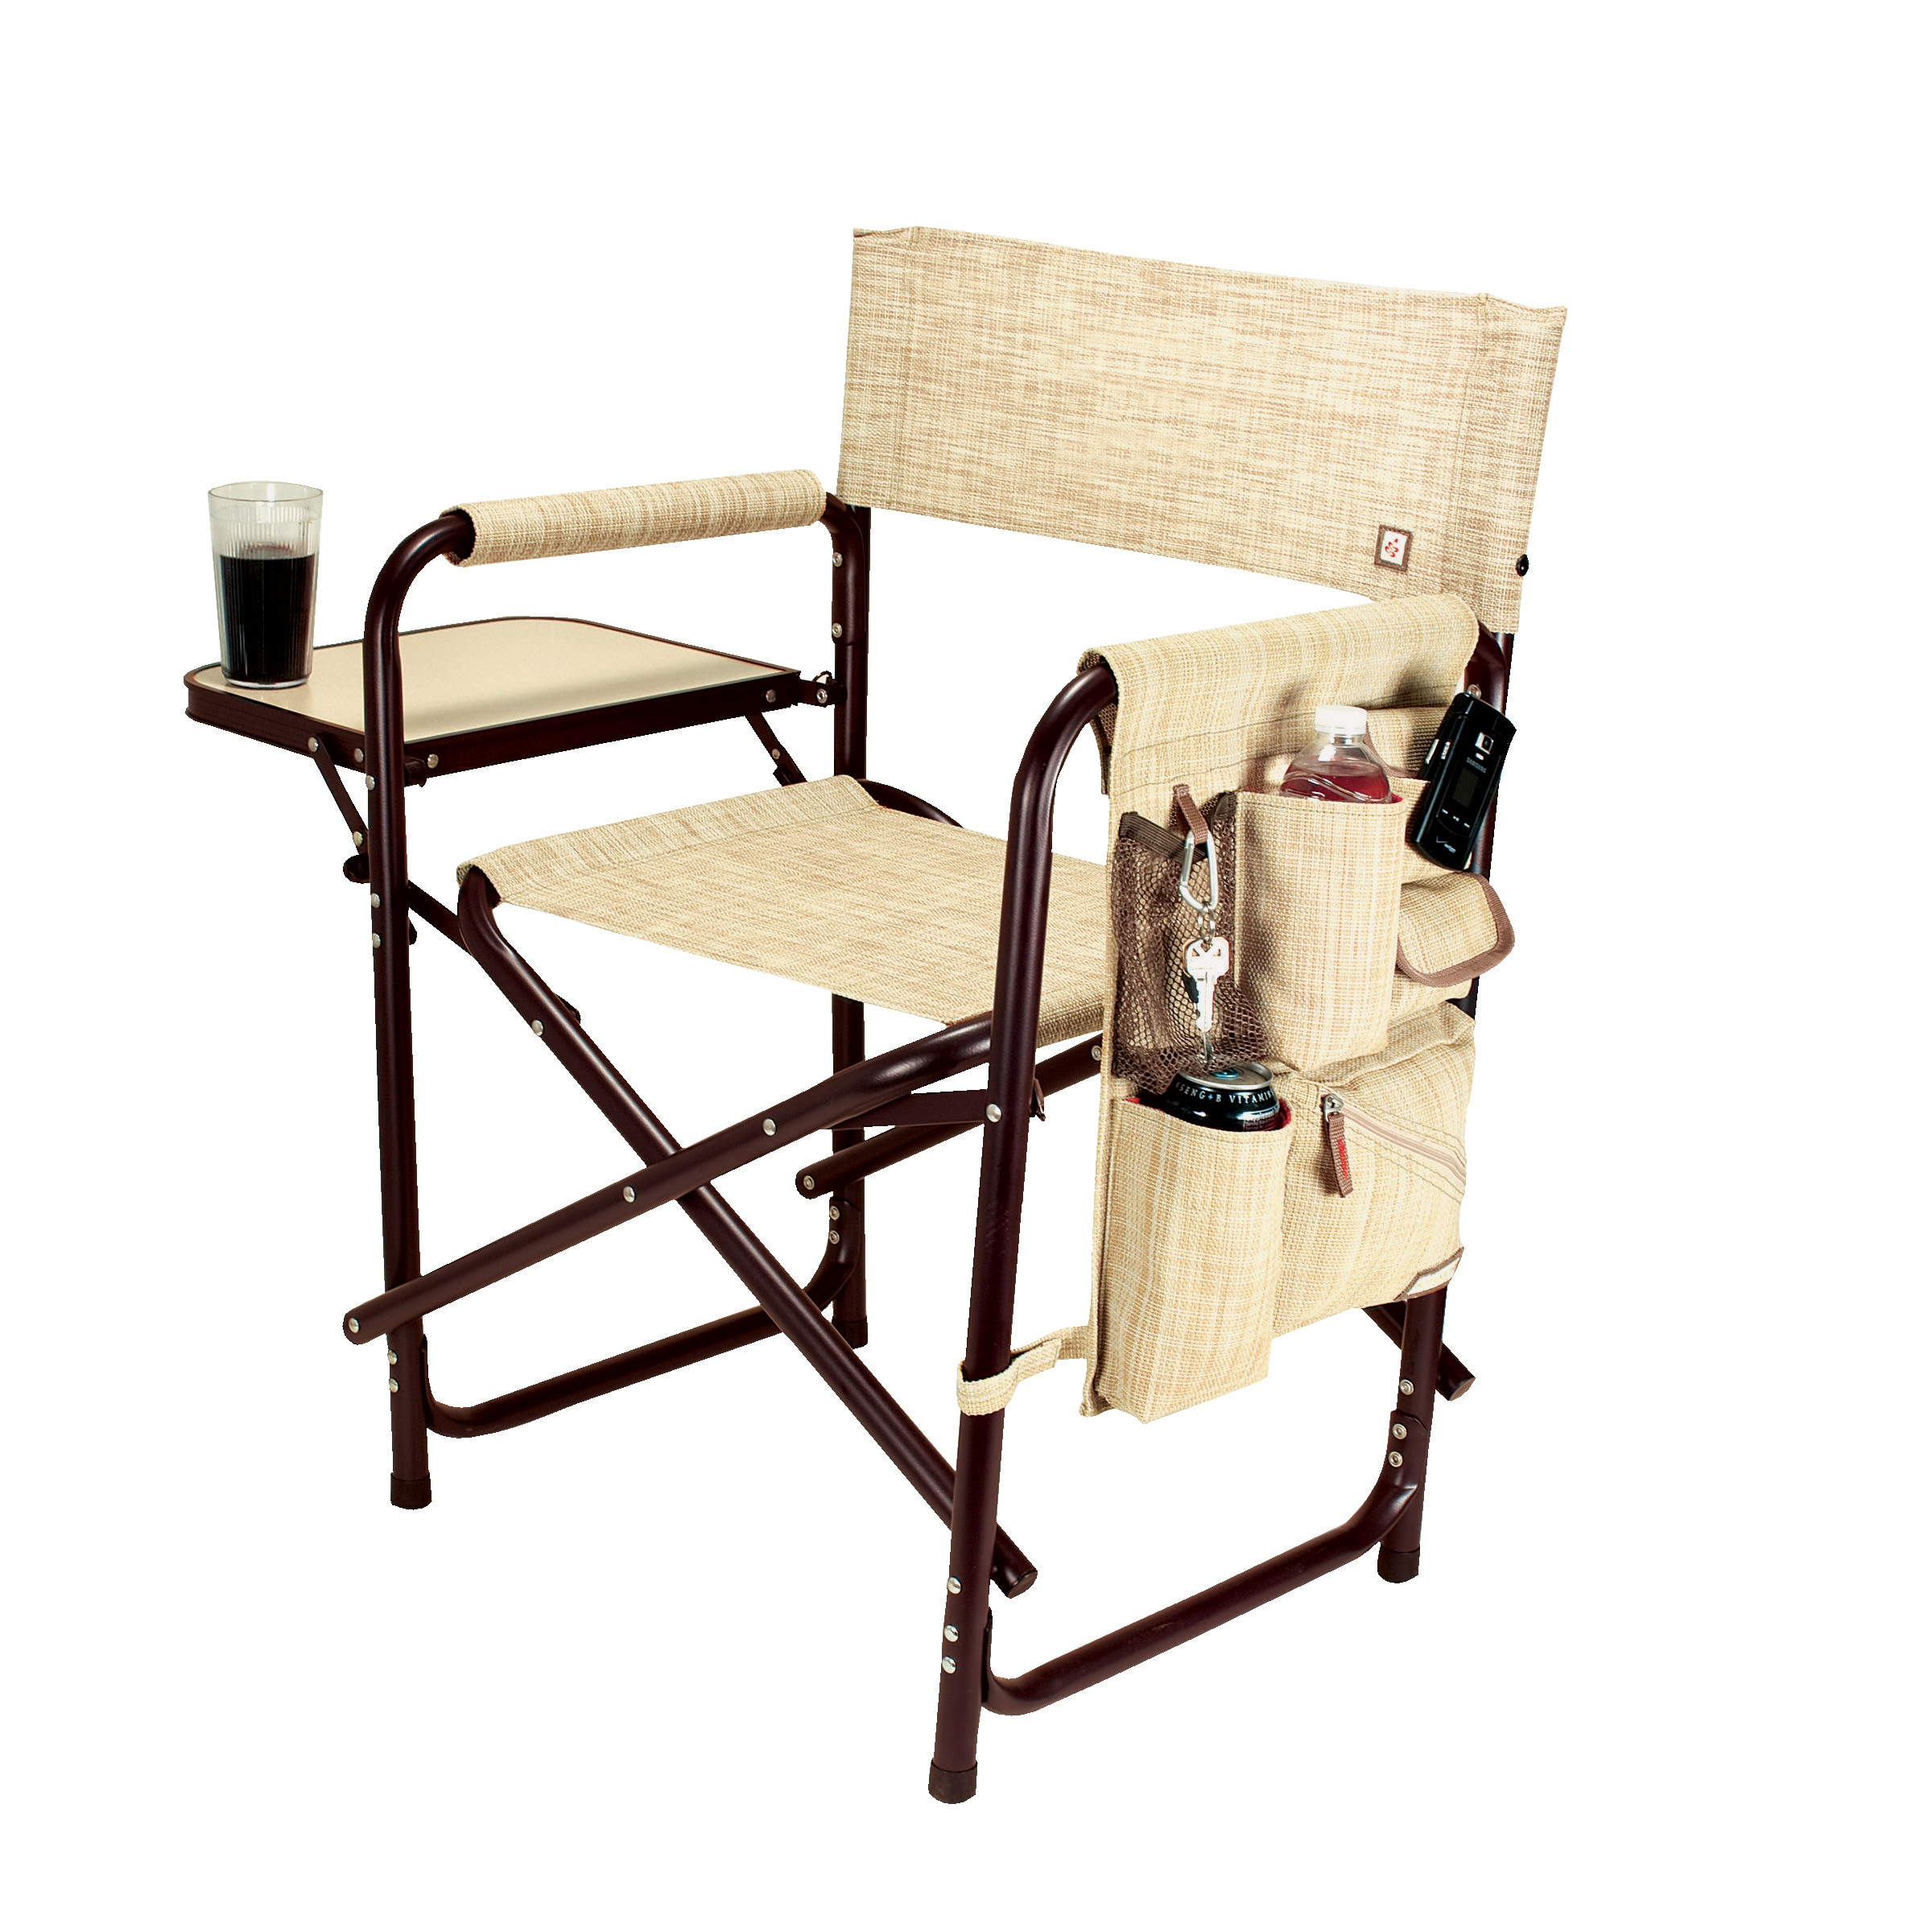 Time Botanica Sports Picnic Camping Chair